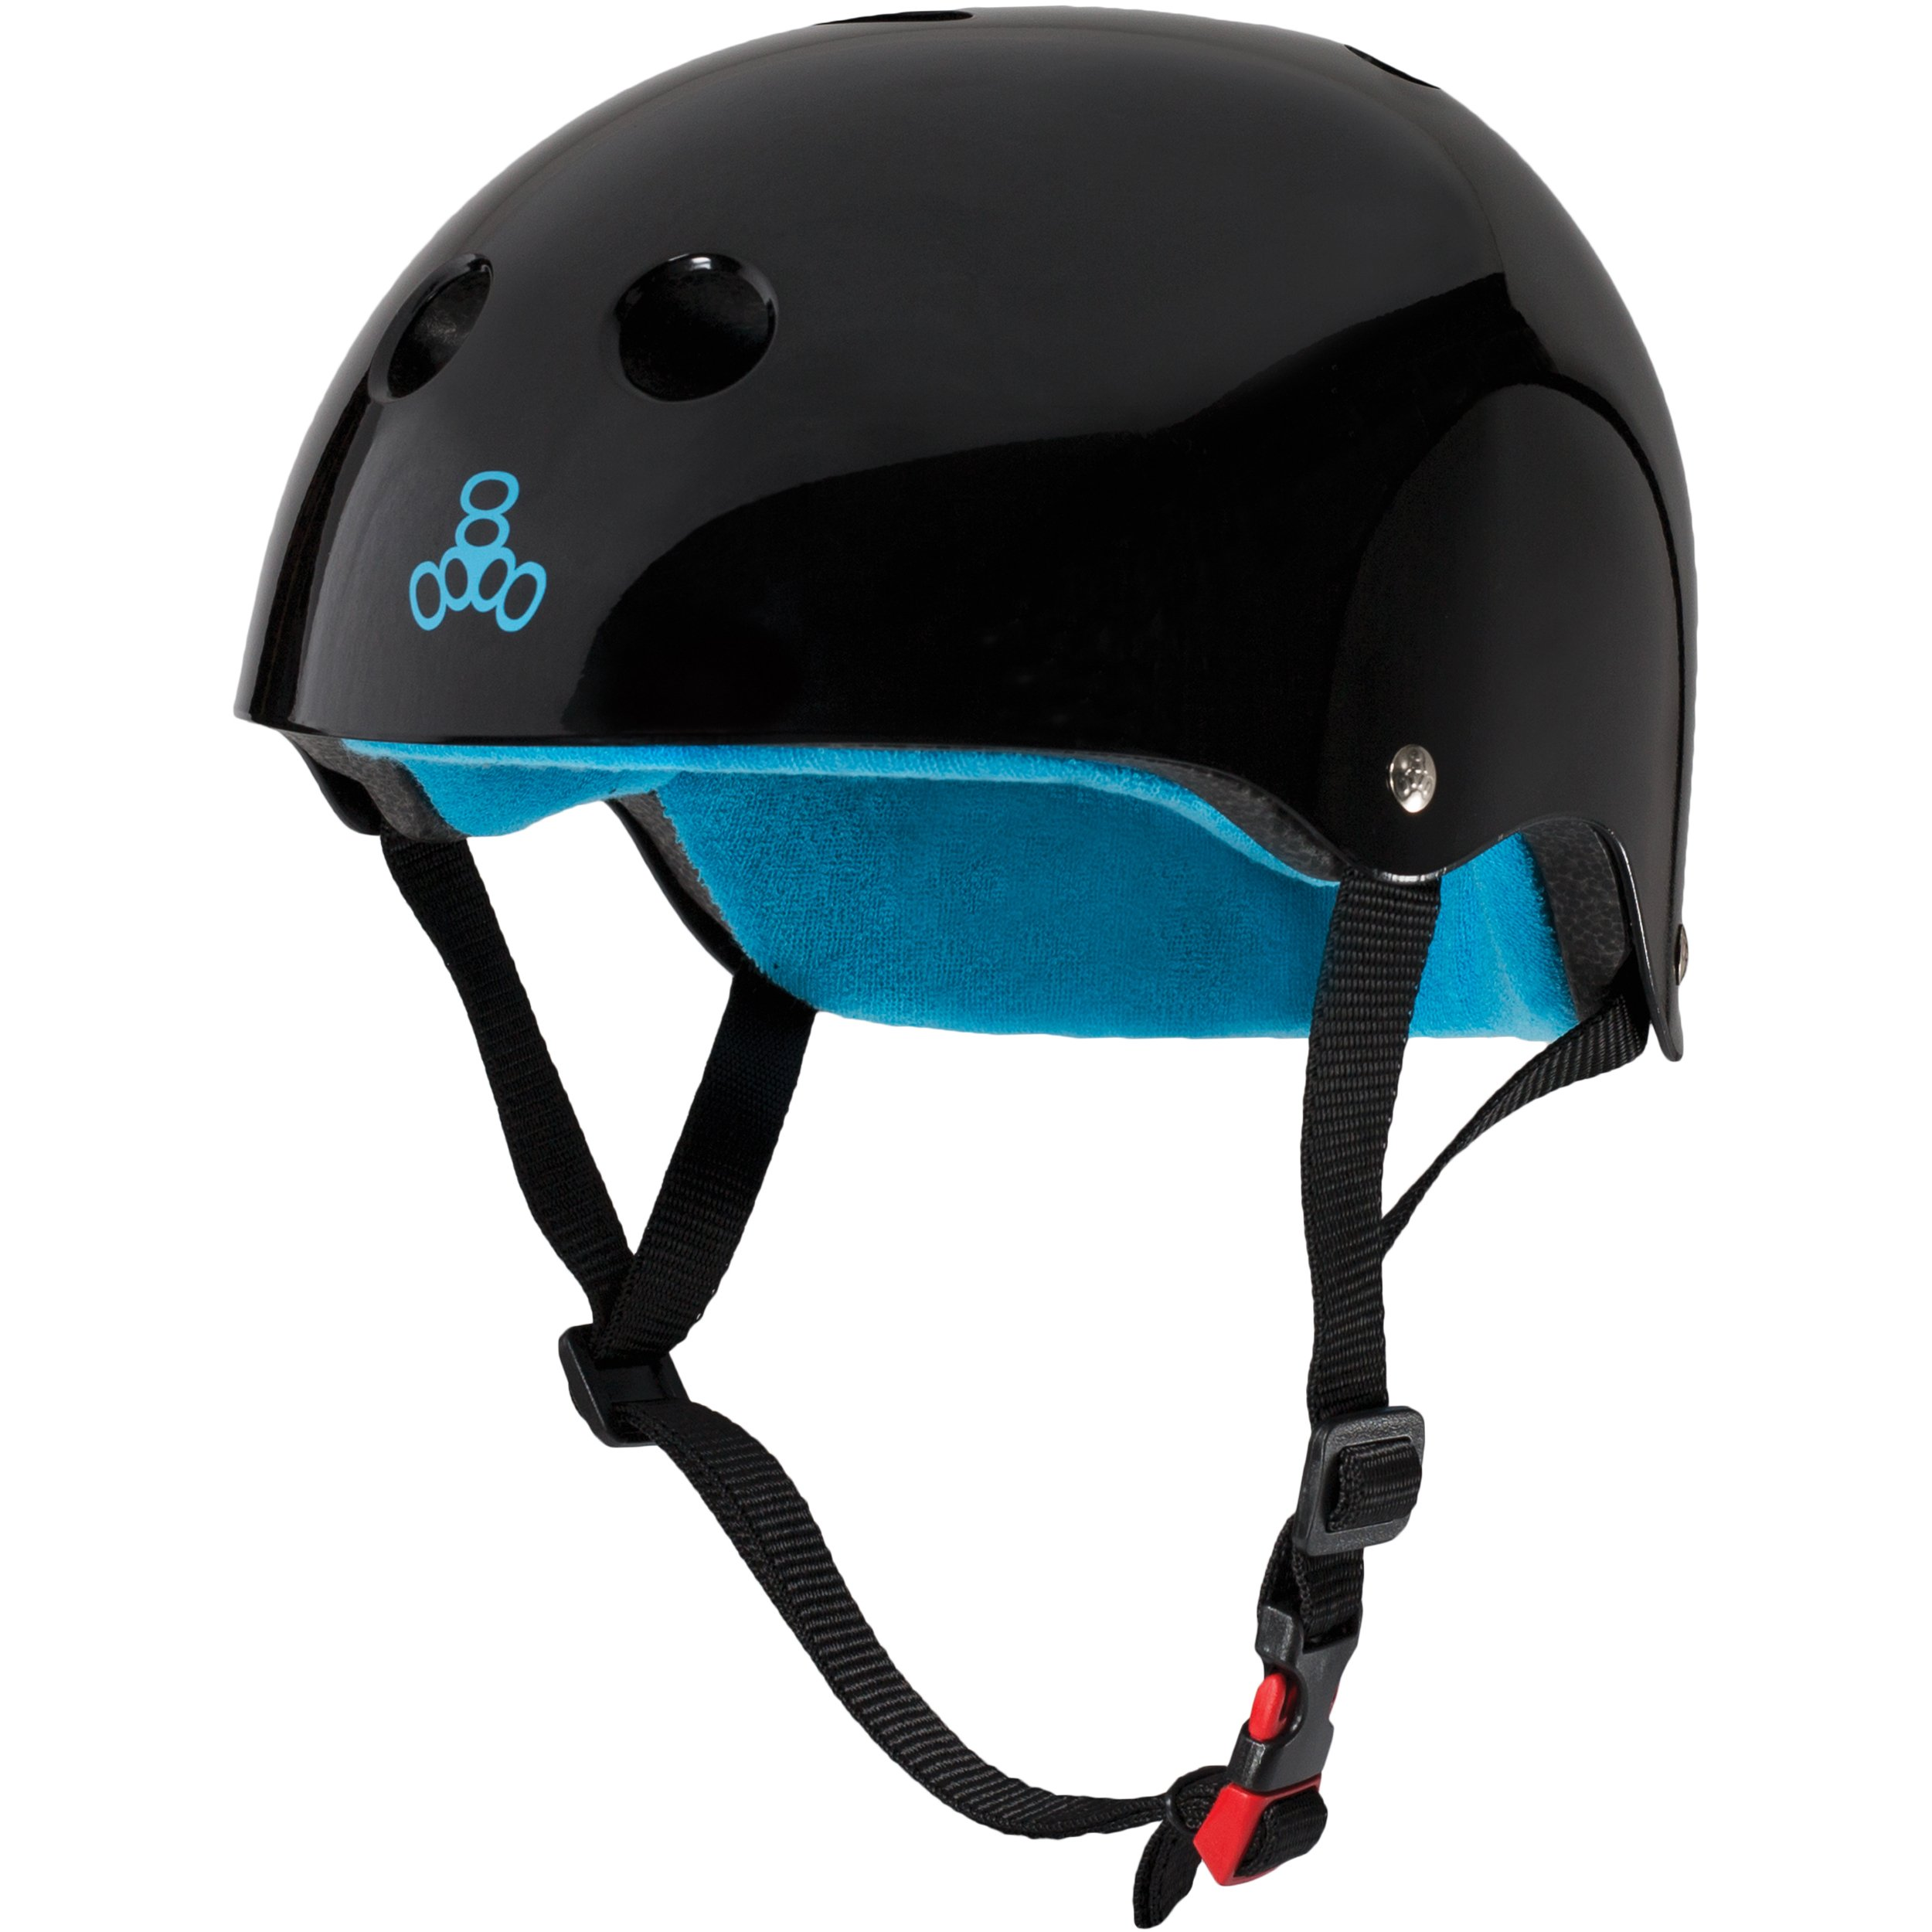 Triple Eight THE Certified Sweatsaver Helmet for Skateboarding, BMX, and Roller Skating, Black Glossy, Small / Medium